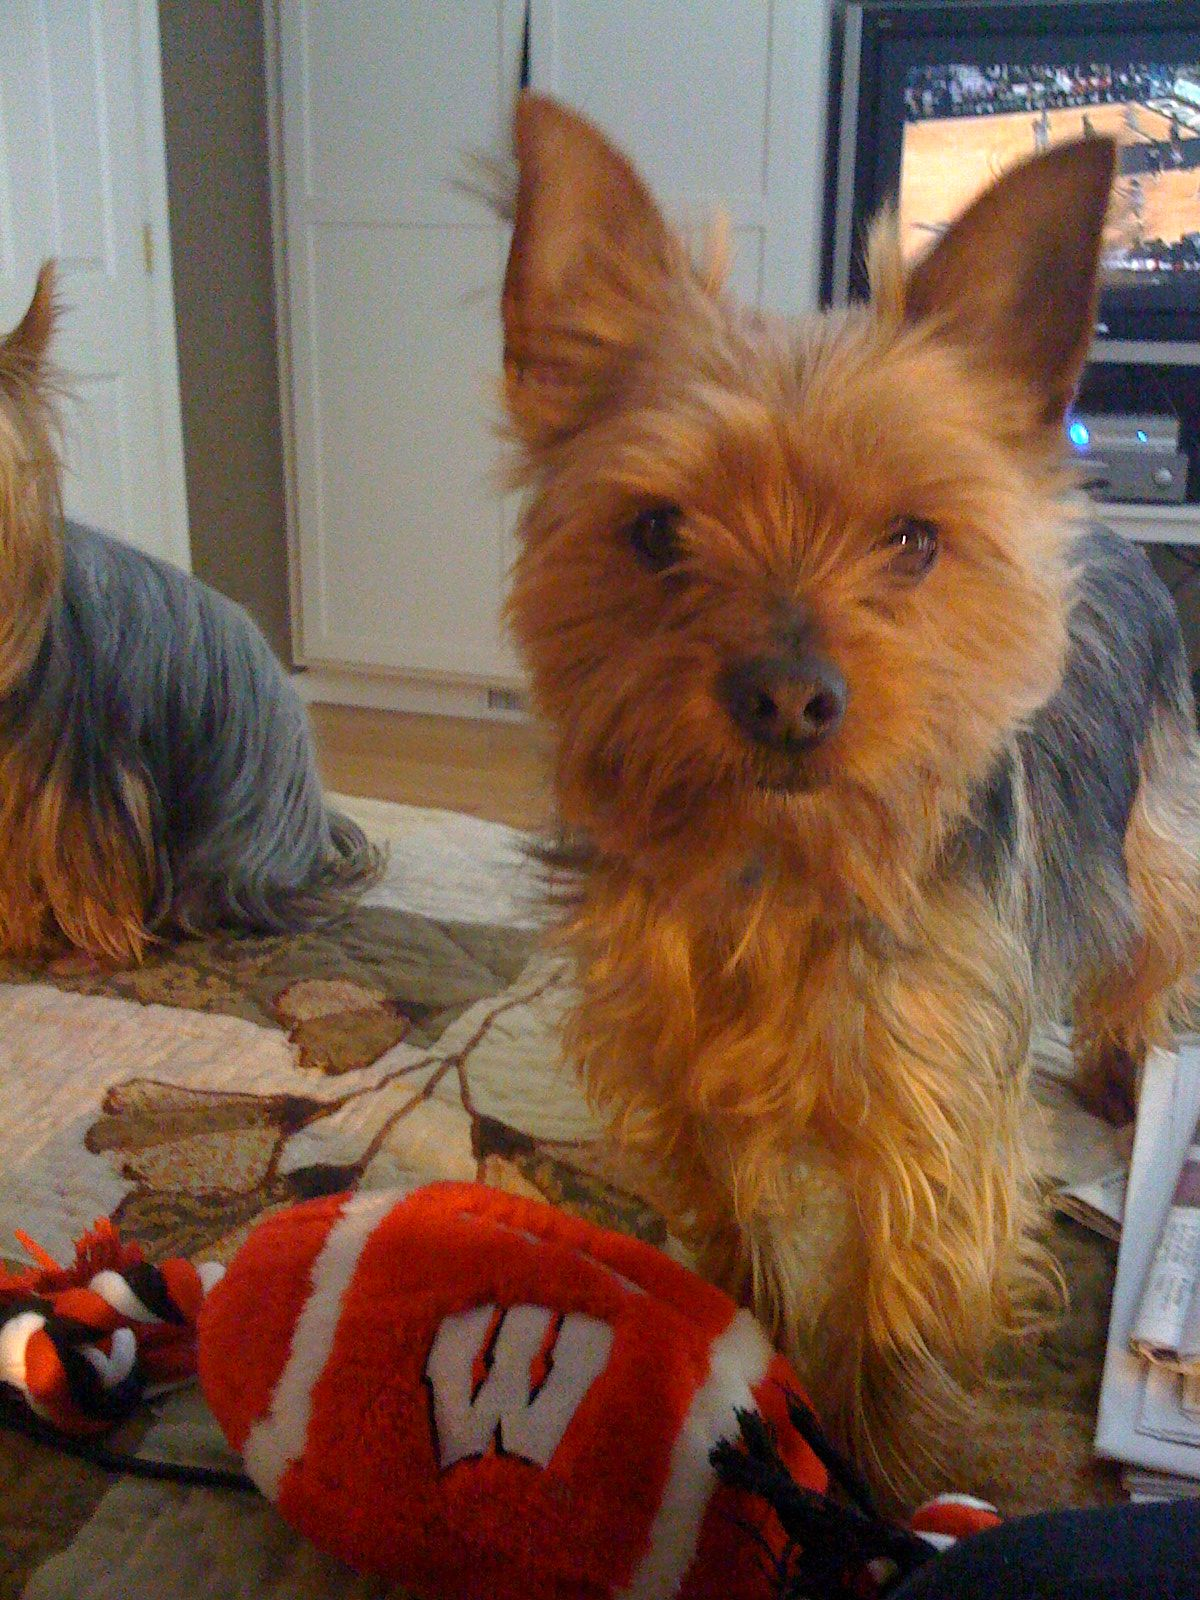 Mr Manhattan Aka Manny Is Our Second Yorkshire Terrier He Is Absolutely The Best Mannered Yorkie Ever At Age Five We Notic With Images Yorkshire Terrier Yorkie Animals